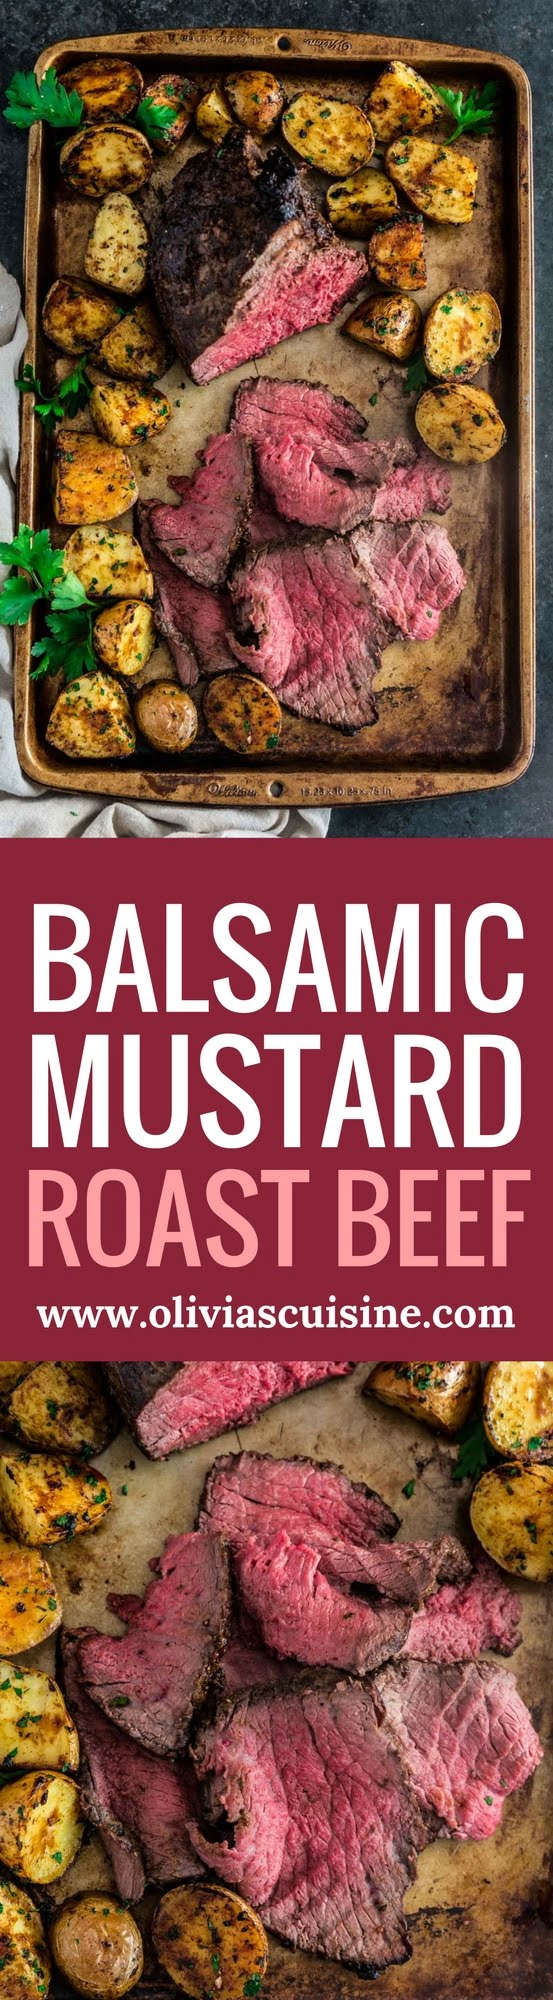 Balsamic Mustard Roast Beef | www.oliviascuisine.com | No holiday table is complete without a beautiful centerpiece roast beef. Glazed with balsamic mustard, this version is both simple and impressive. It will quickly become your go-to recipe for any special occasion!